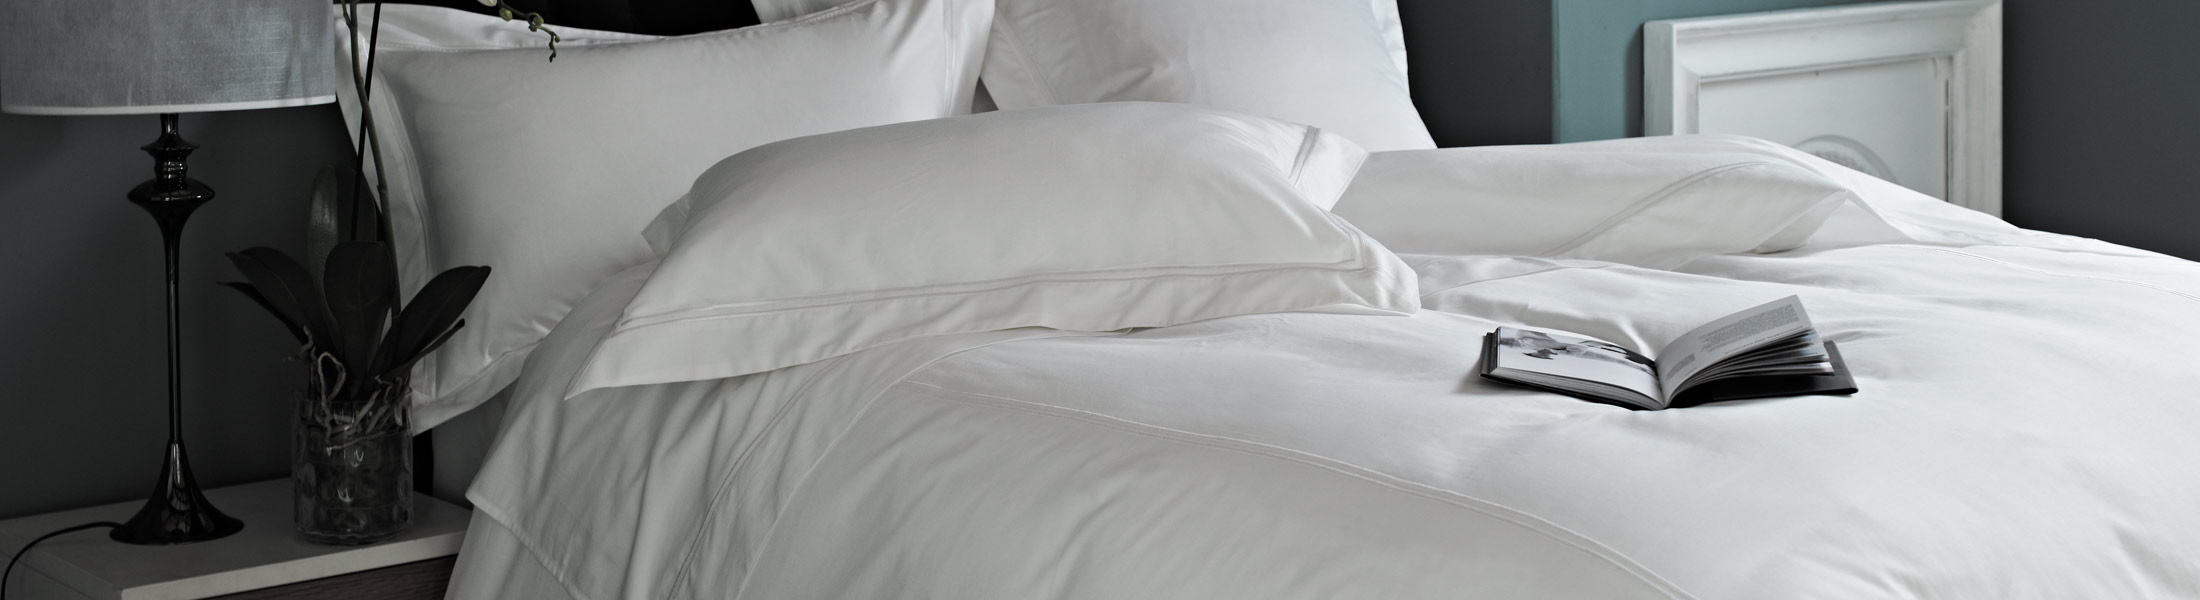 white bed sheets twitter header. White Bed Sheets Twitter Header